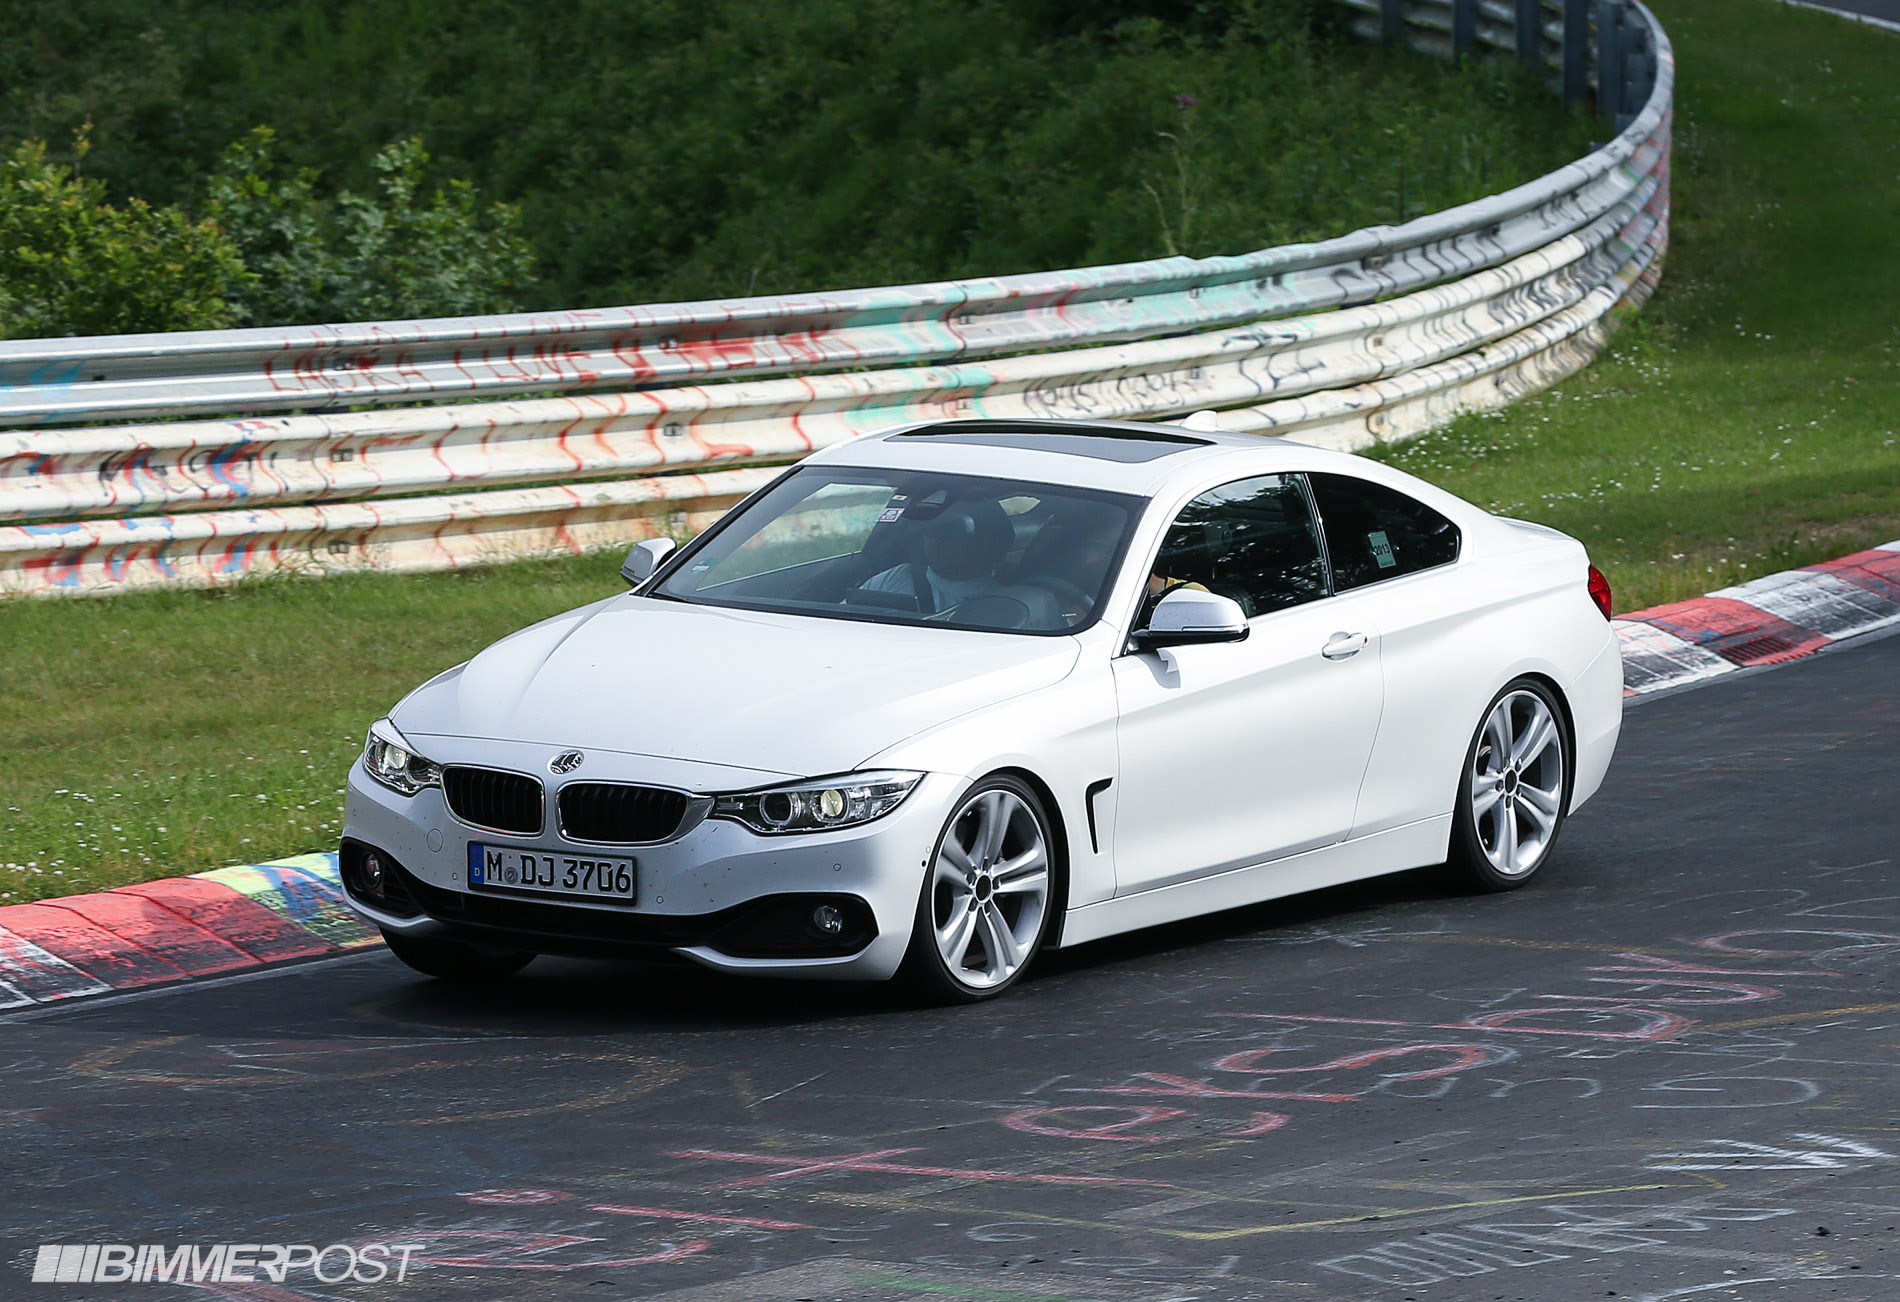 F32 Official Mineral White 4 Series Photo Thread